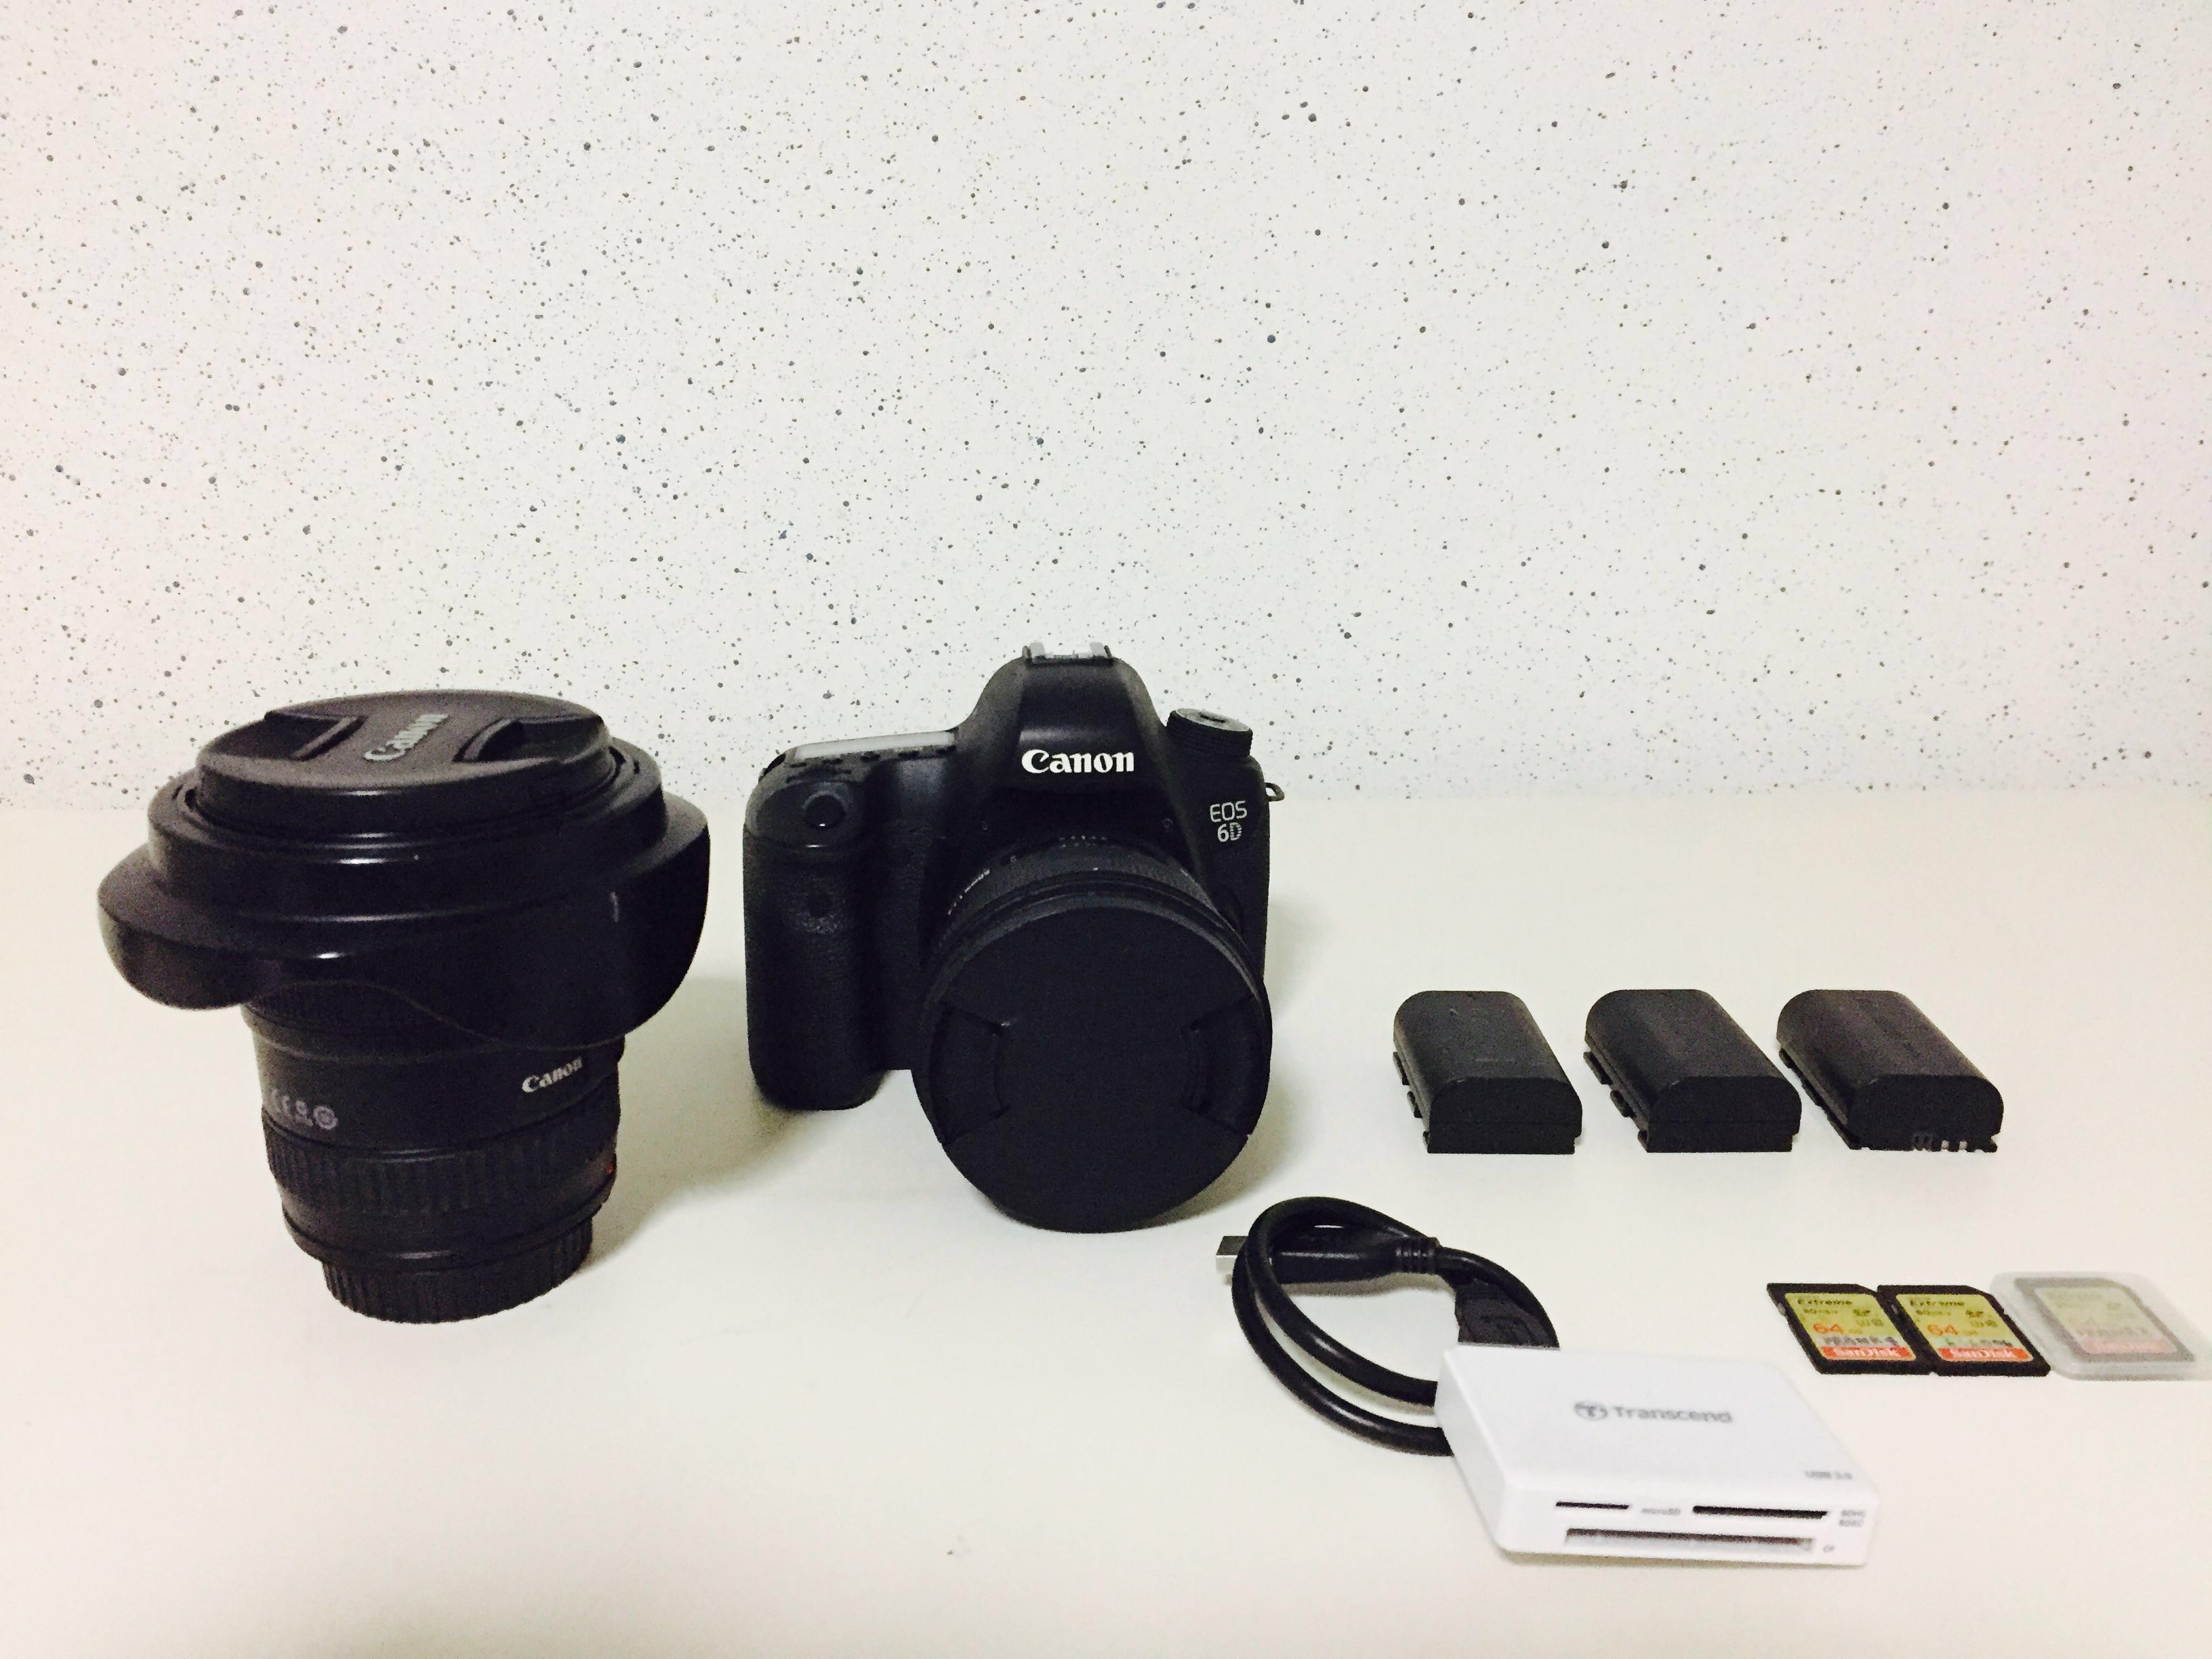 Canon 6D Full Frame package for rental, Photography, Cameras, DSLR ...